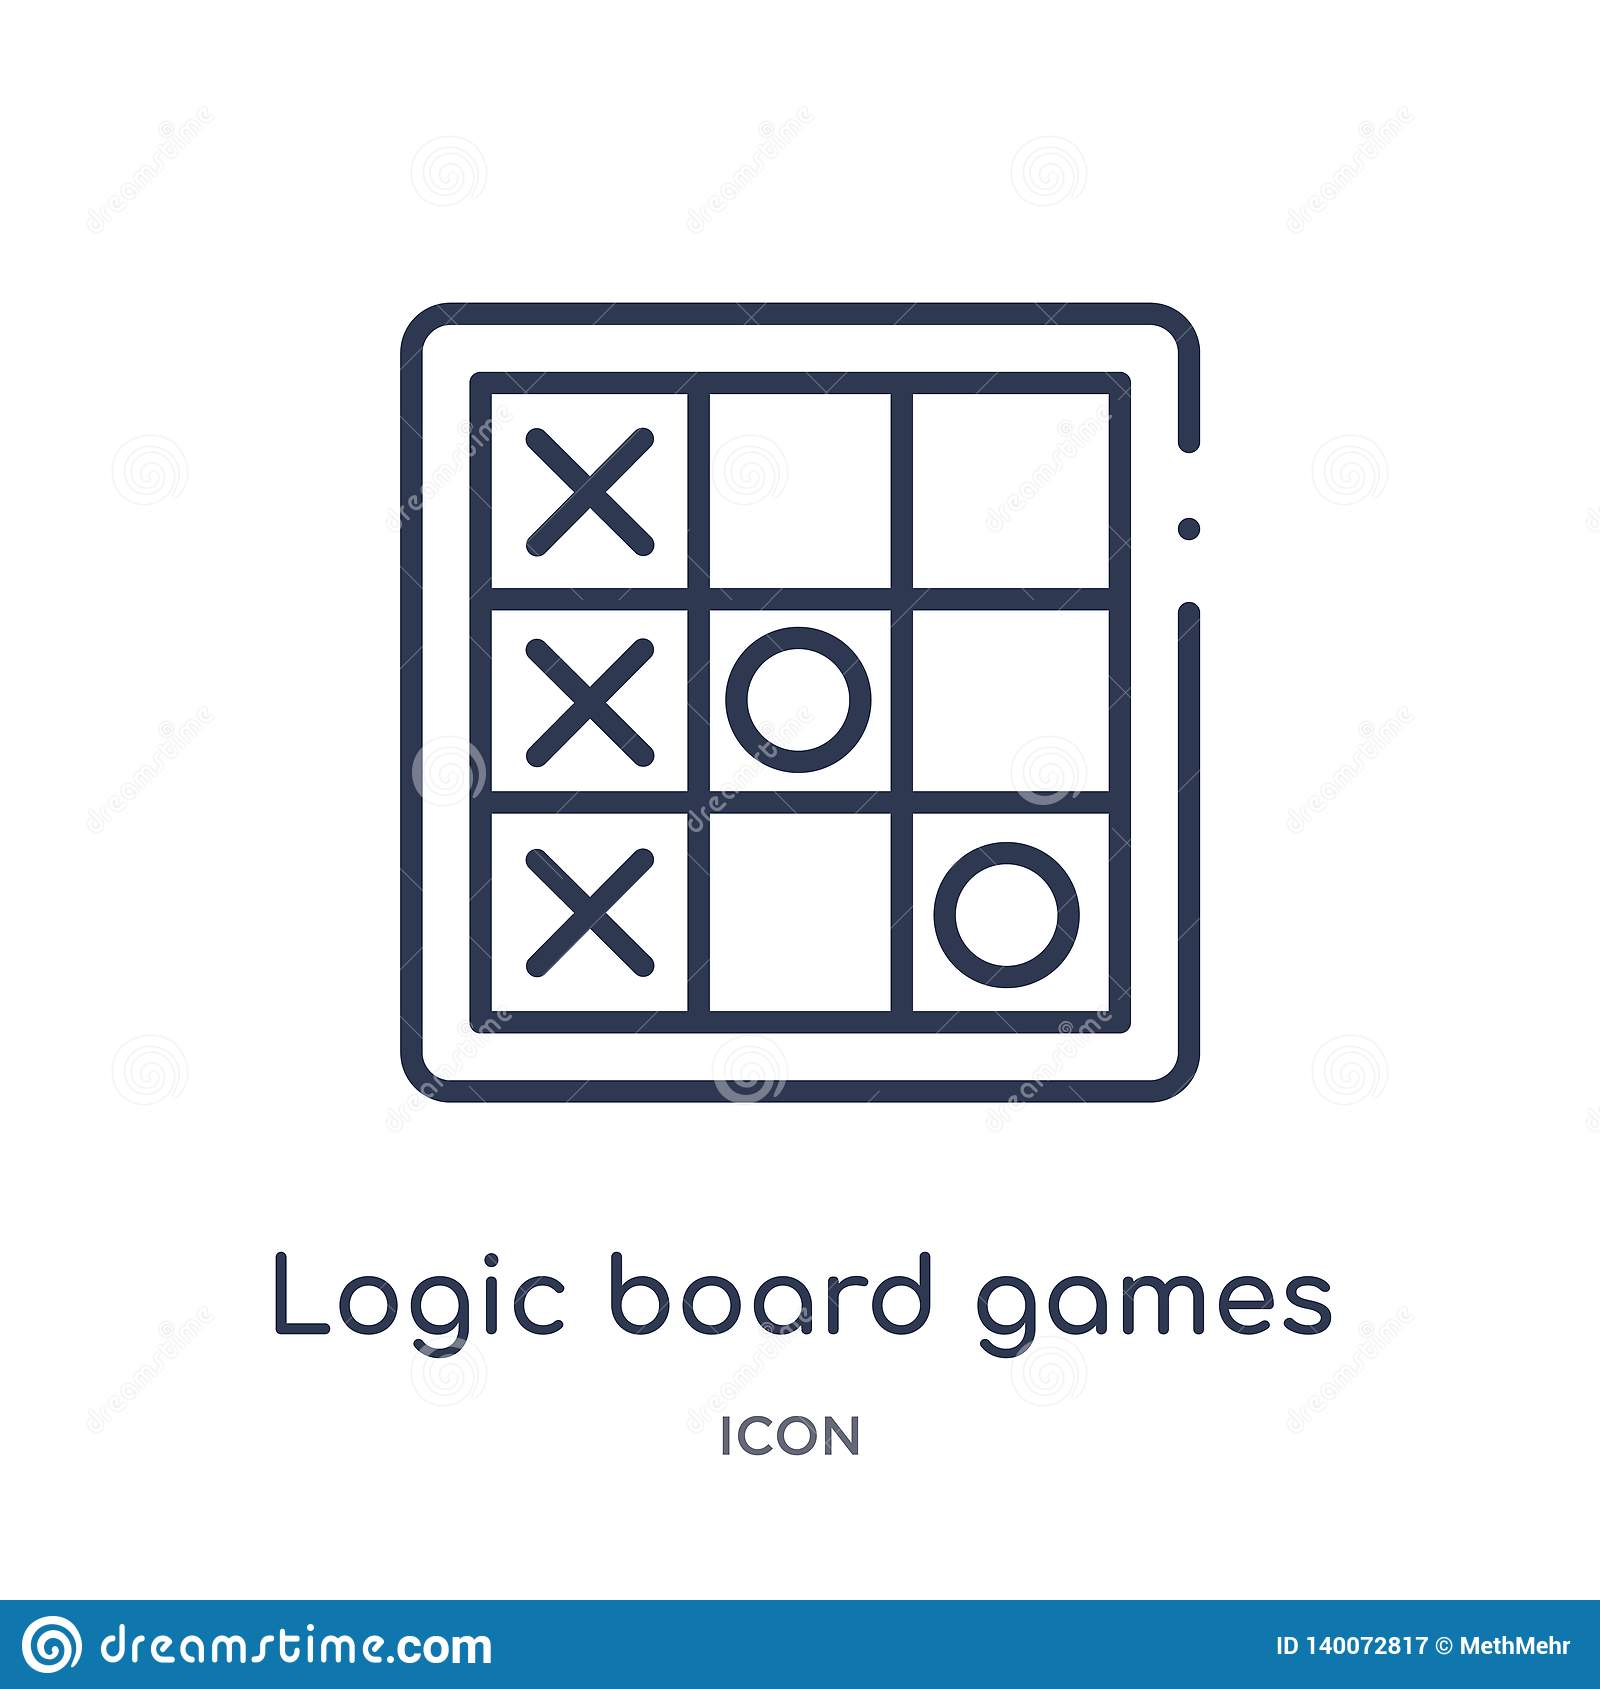 Linear logic board games icon from Entertainment outline collection. Thin line logic board games icon isolated on white background